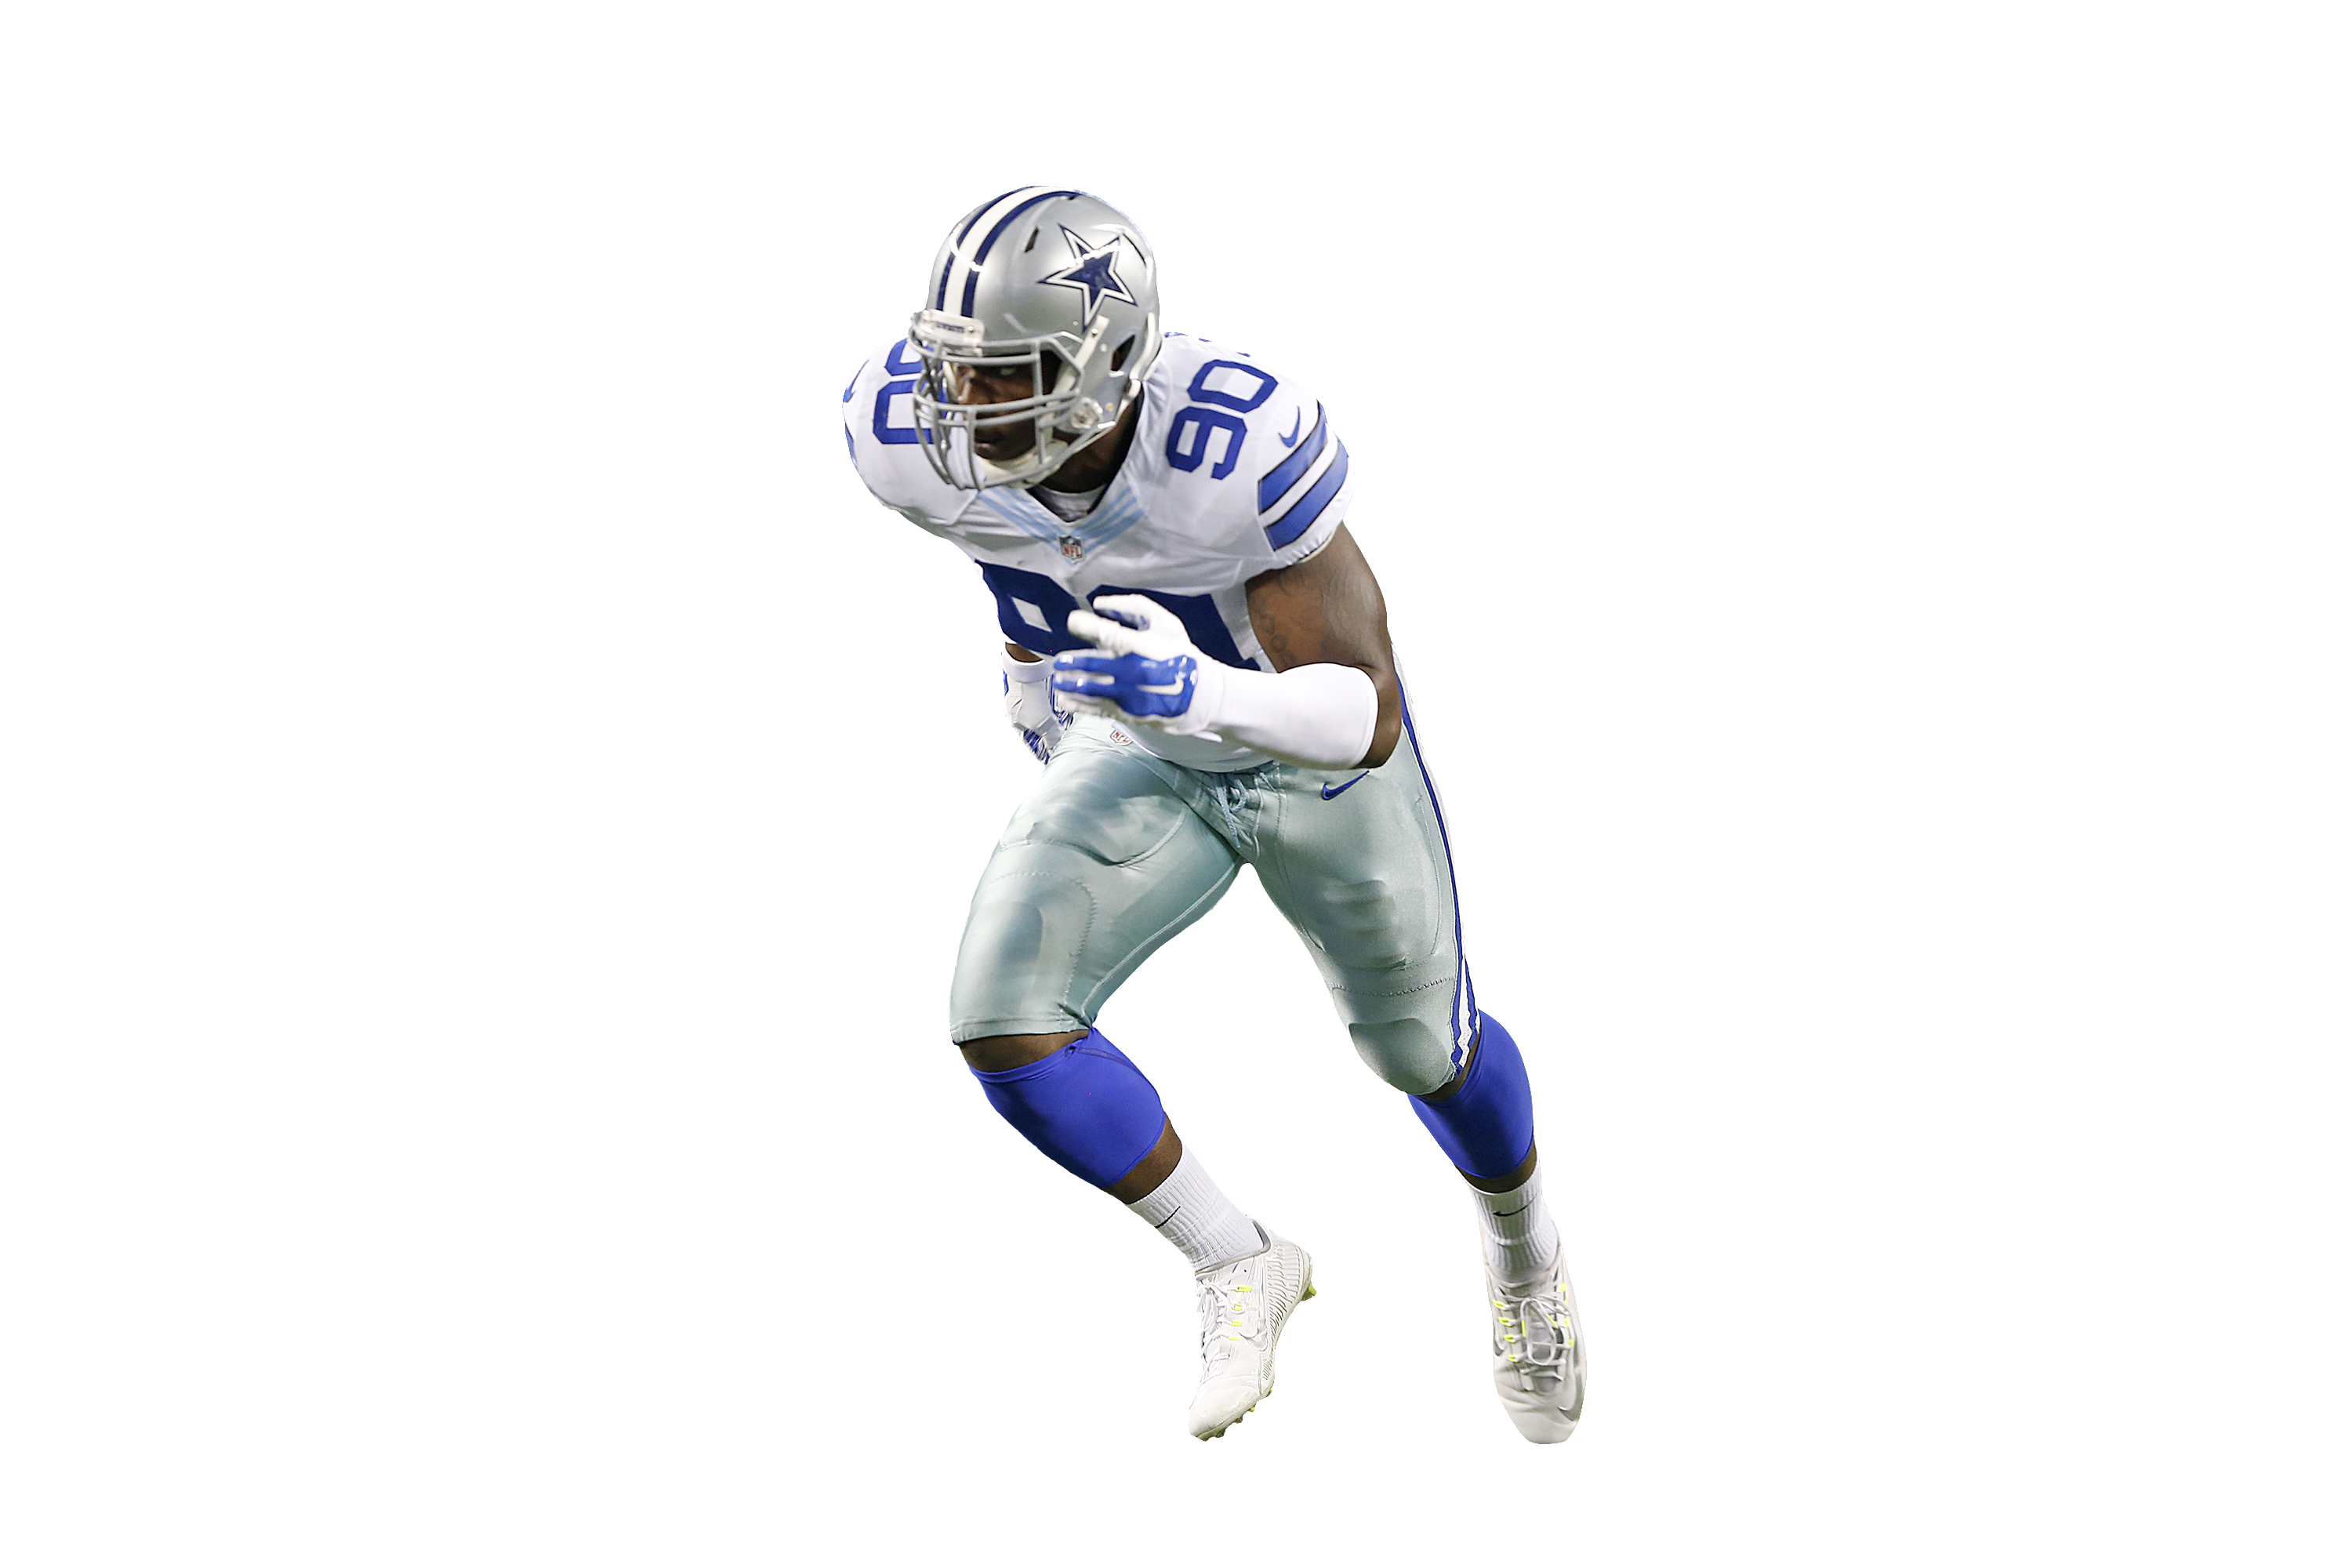 Dallas cowboys clipart high resolution. Download free png transparent